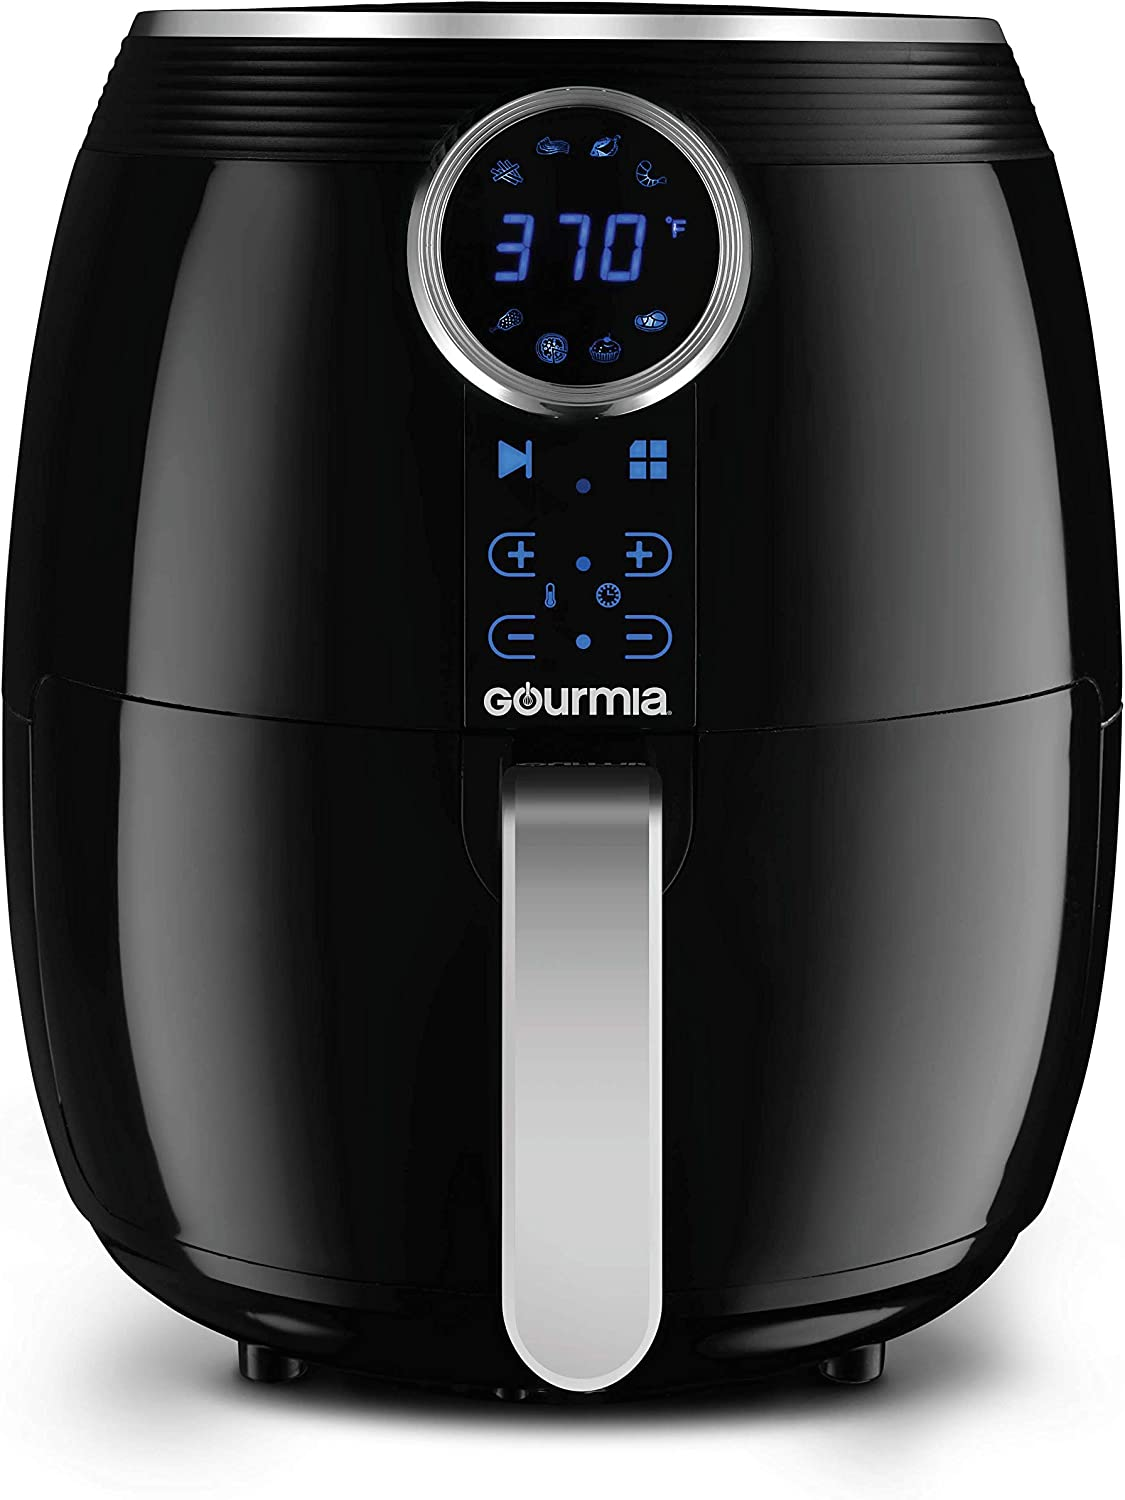 Gourmia Digital Air Fryer 5 QT 4.7 Liter Capacity with Digital Touch LCD Display, RadiVection 360 Heat Circulation Technology and 2-tiered Cooking Racks